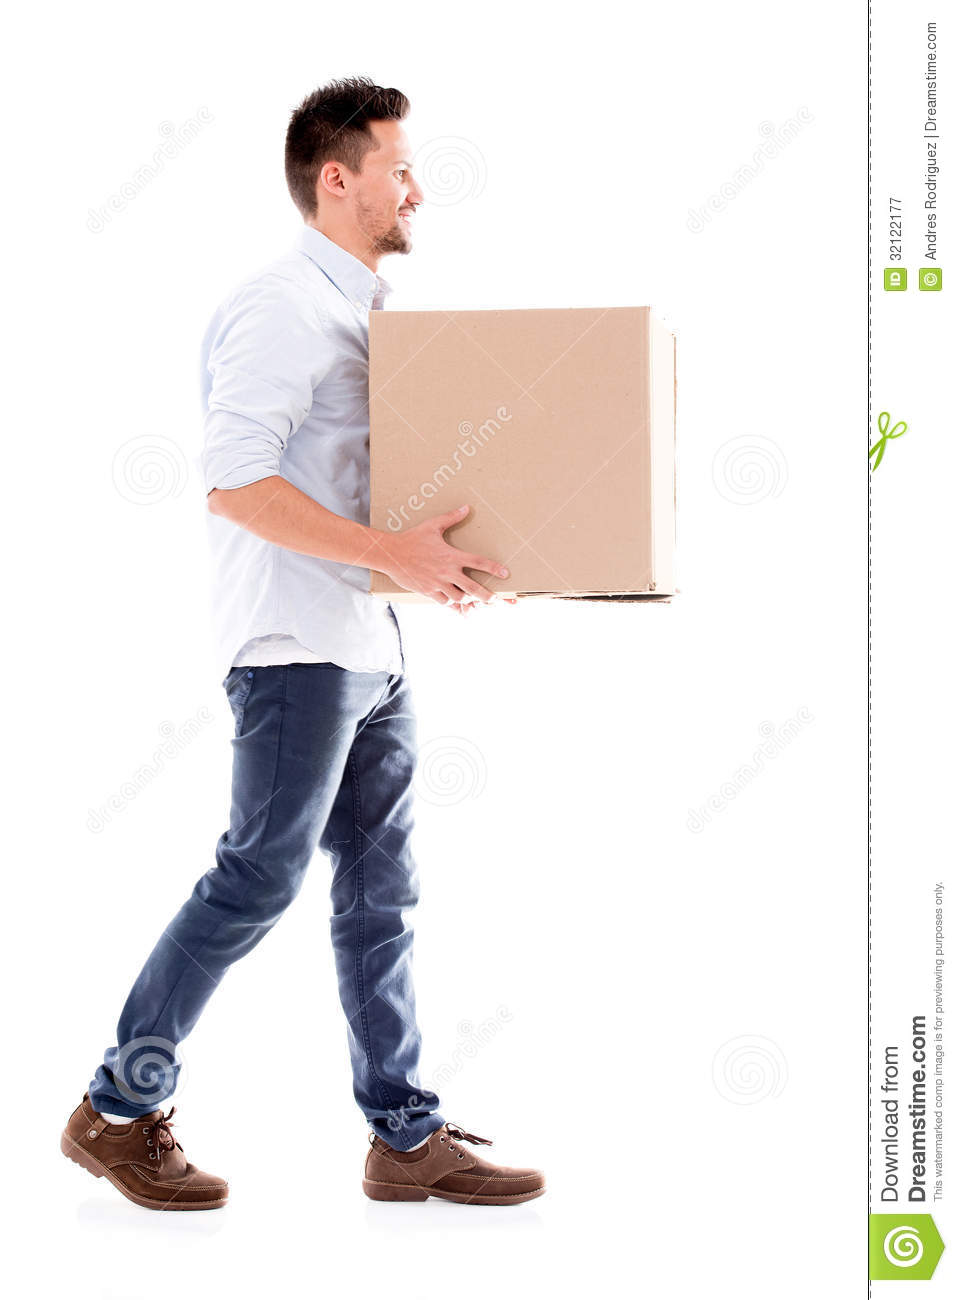 Business Man Carrying A Box Stock Image Image 32122177